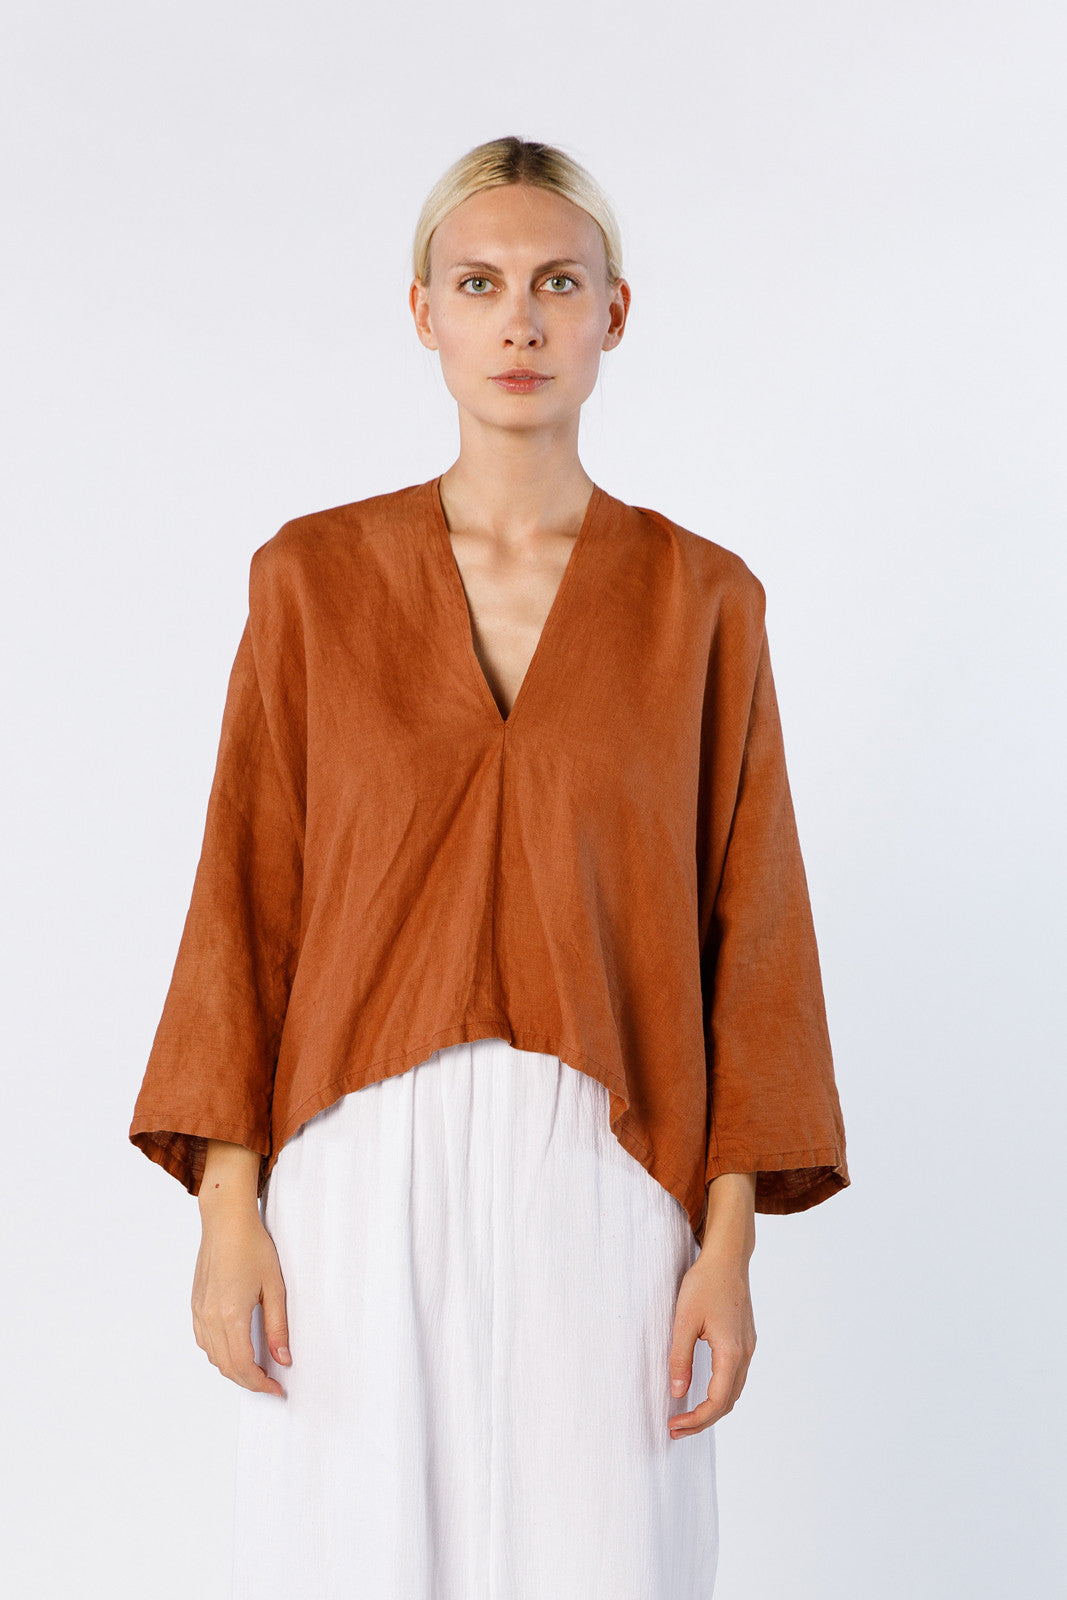 Muse Top, Linen in Marfa